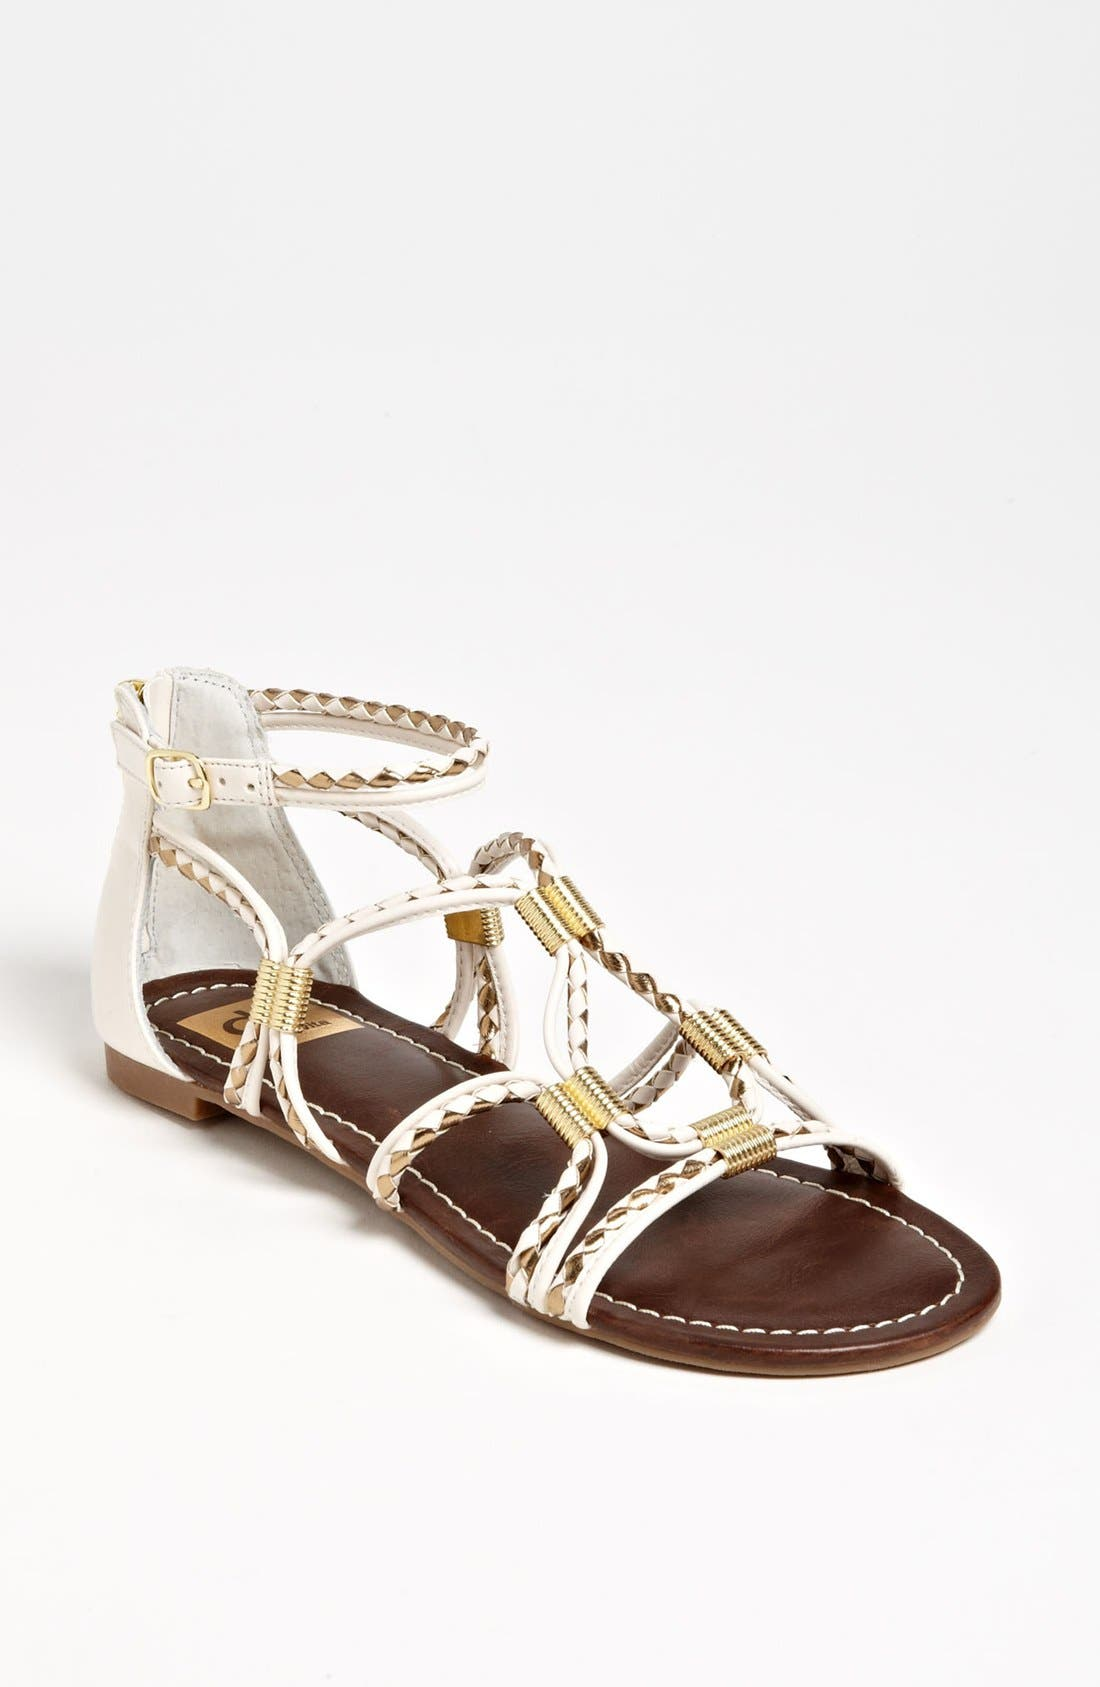 Alternate Image 1 Selected - DV by Dolce Vita 'Diandra' Sandal (Online Only)